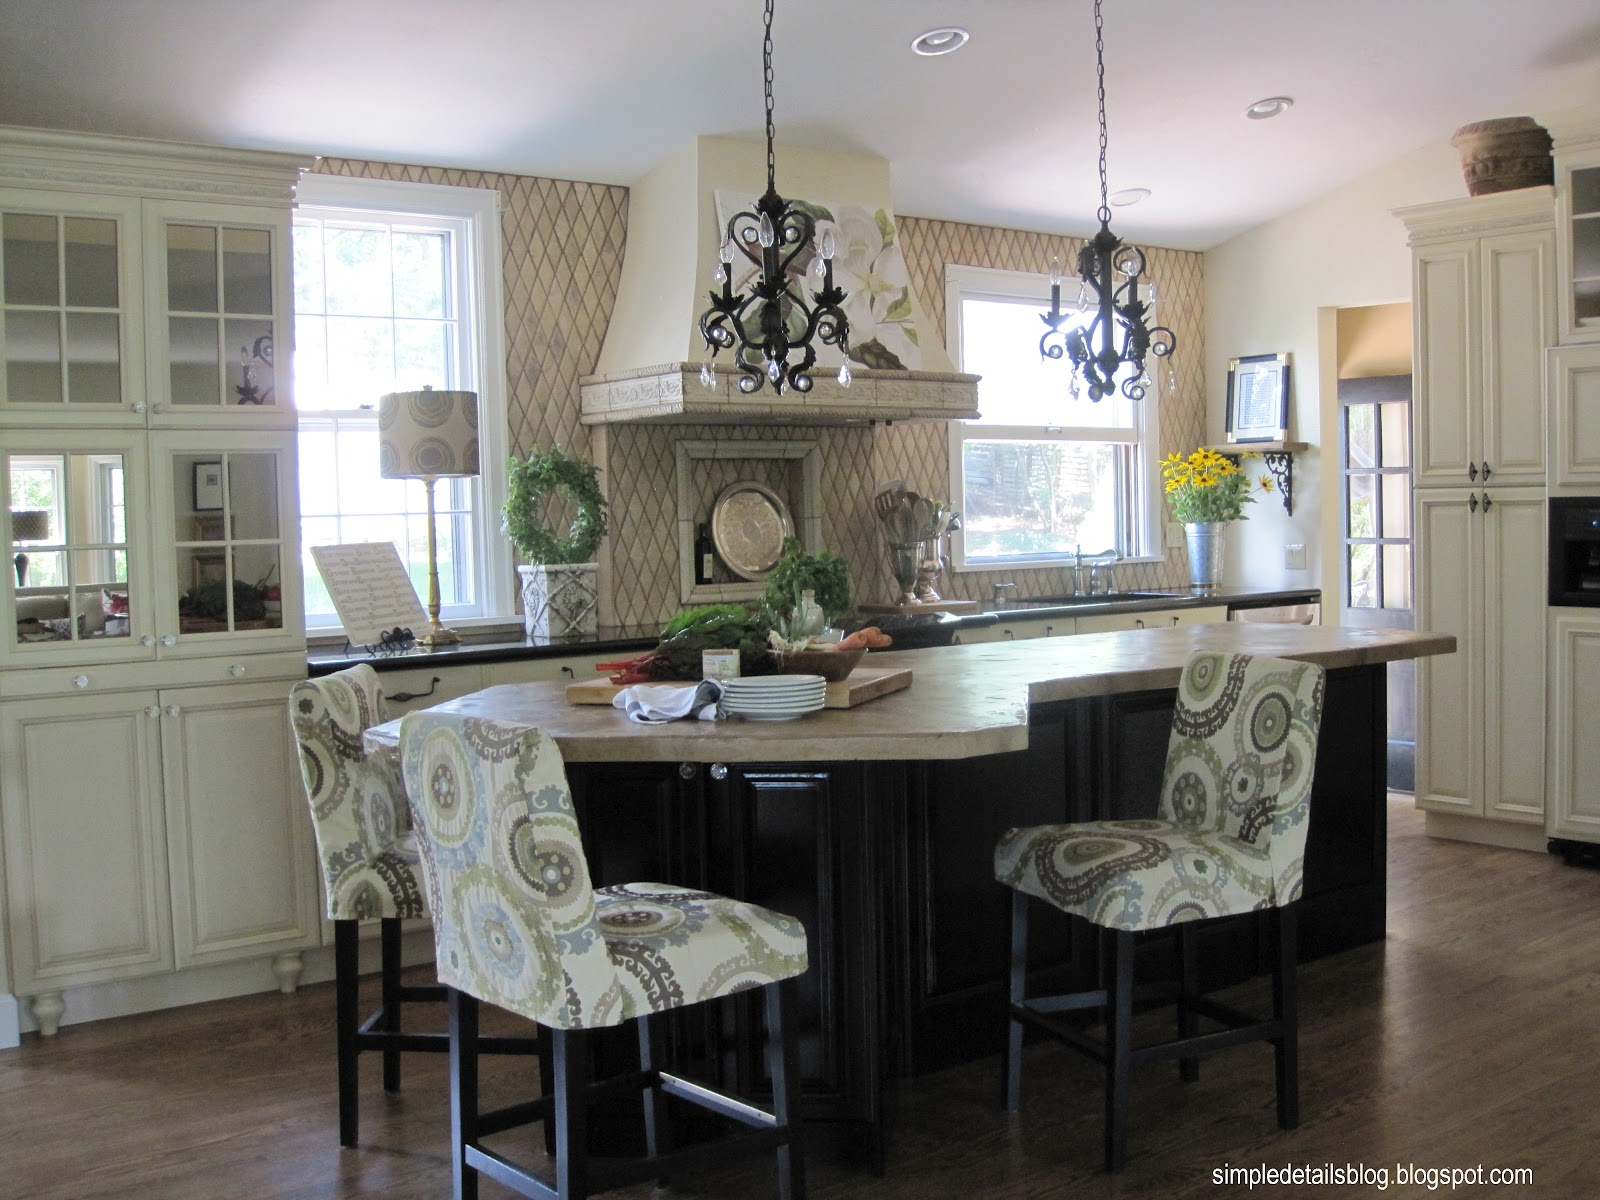 Kitchens without Upper Cabinets